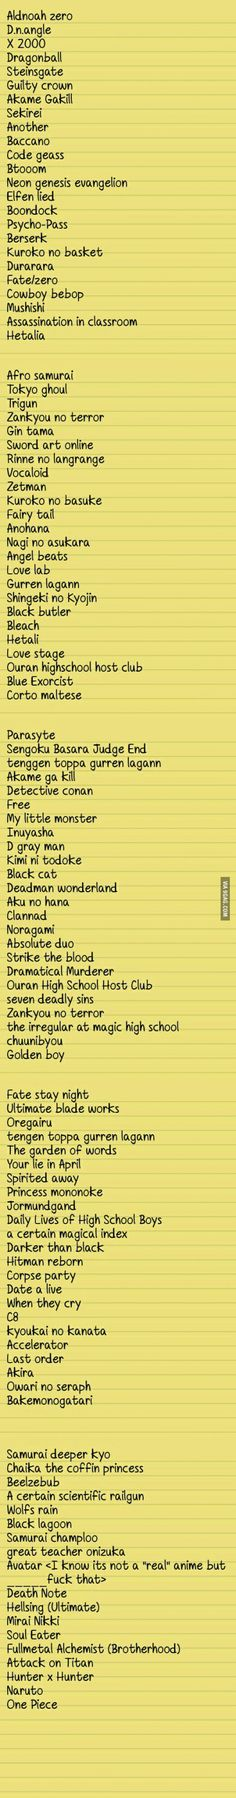 Anime list yesss I need something like this